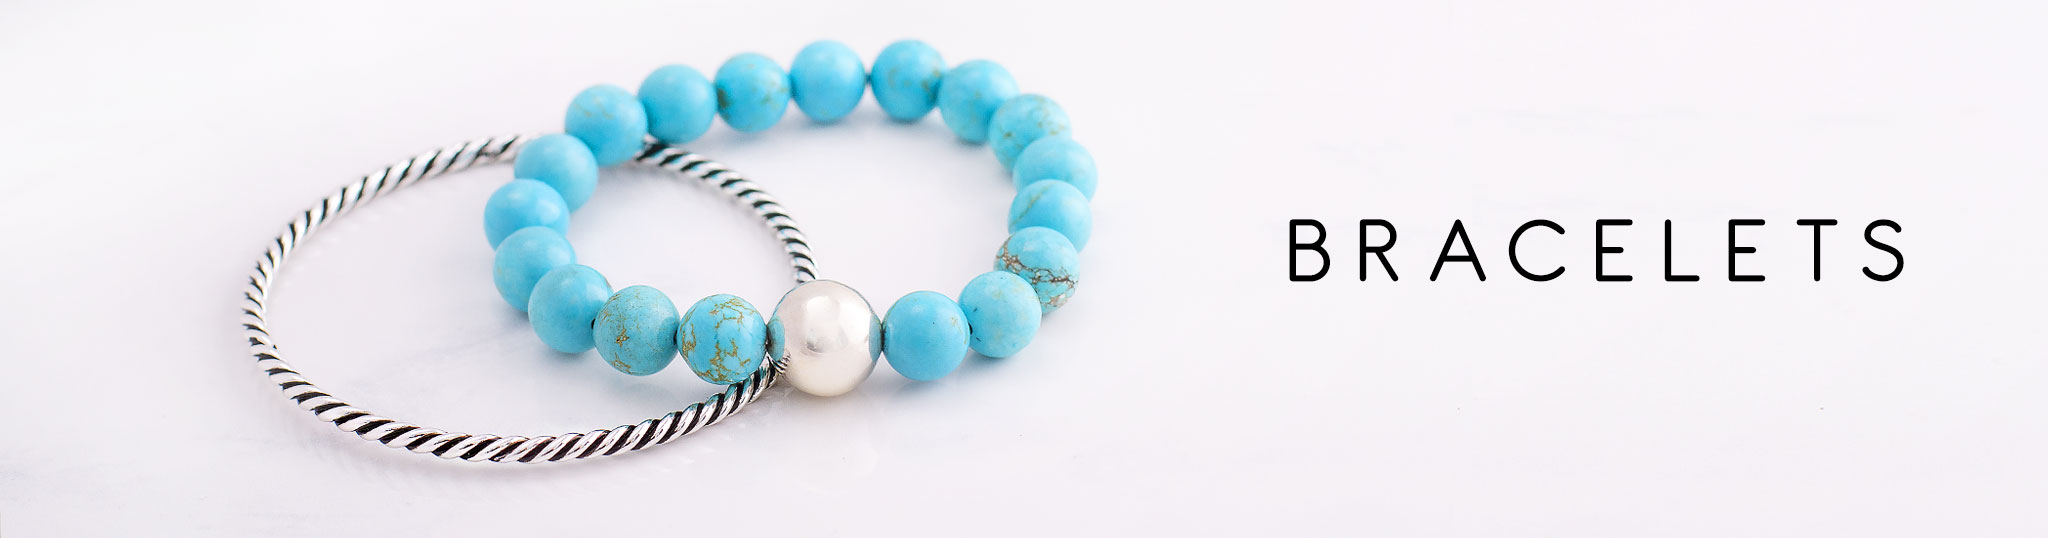 Silver and Stone Bracelets for Women